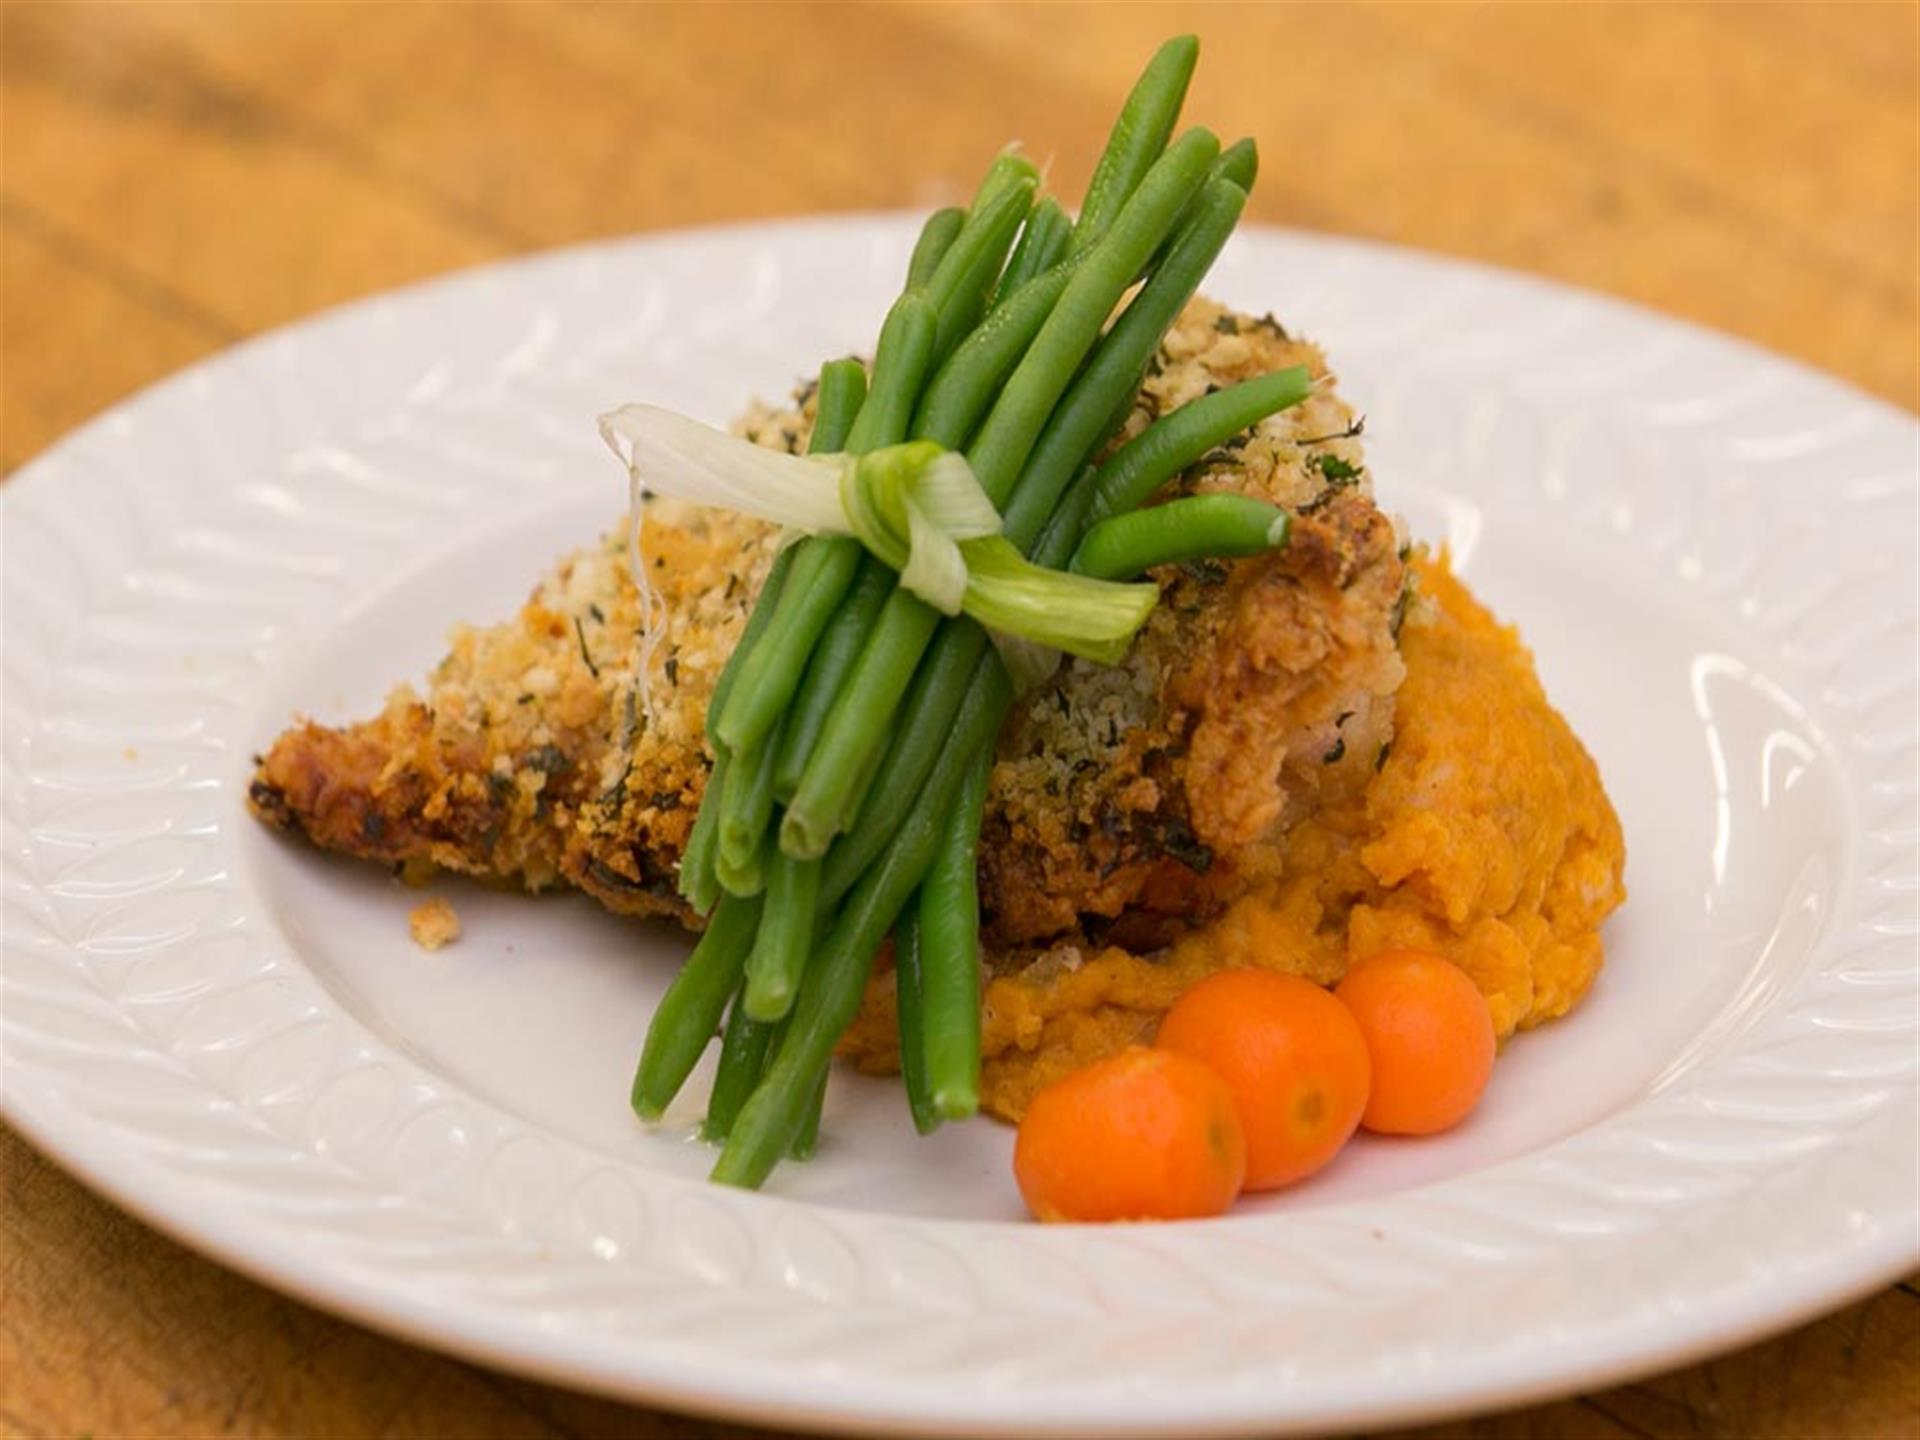 chicken breast served with green beans, tomatoes and pureed vegetables